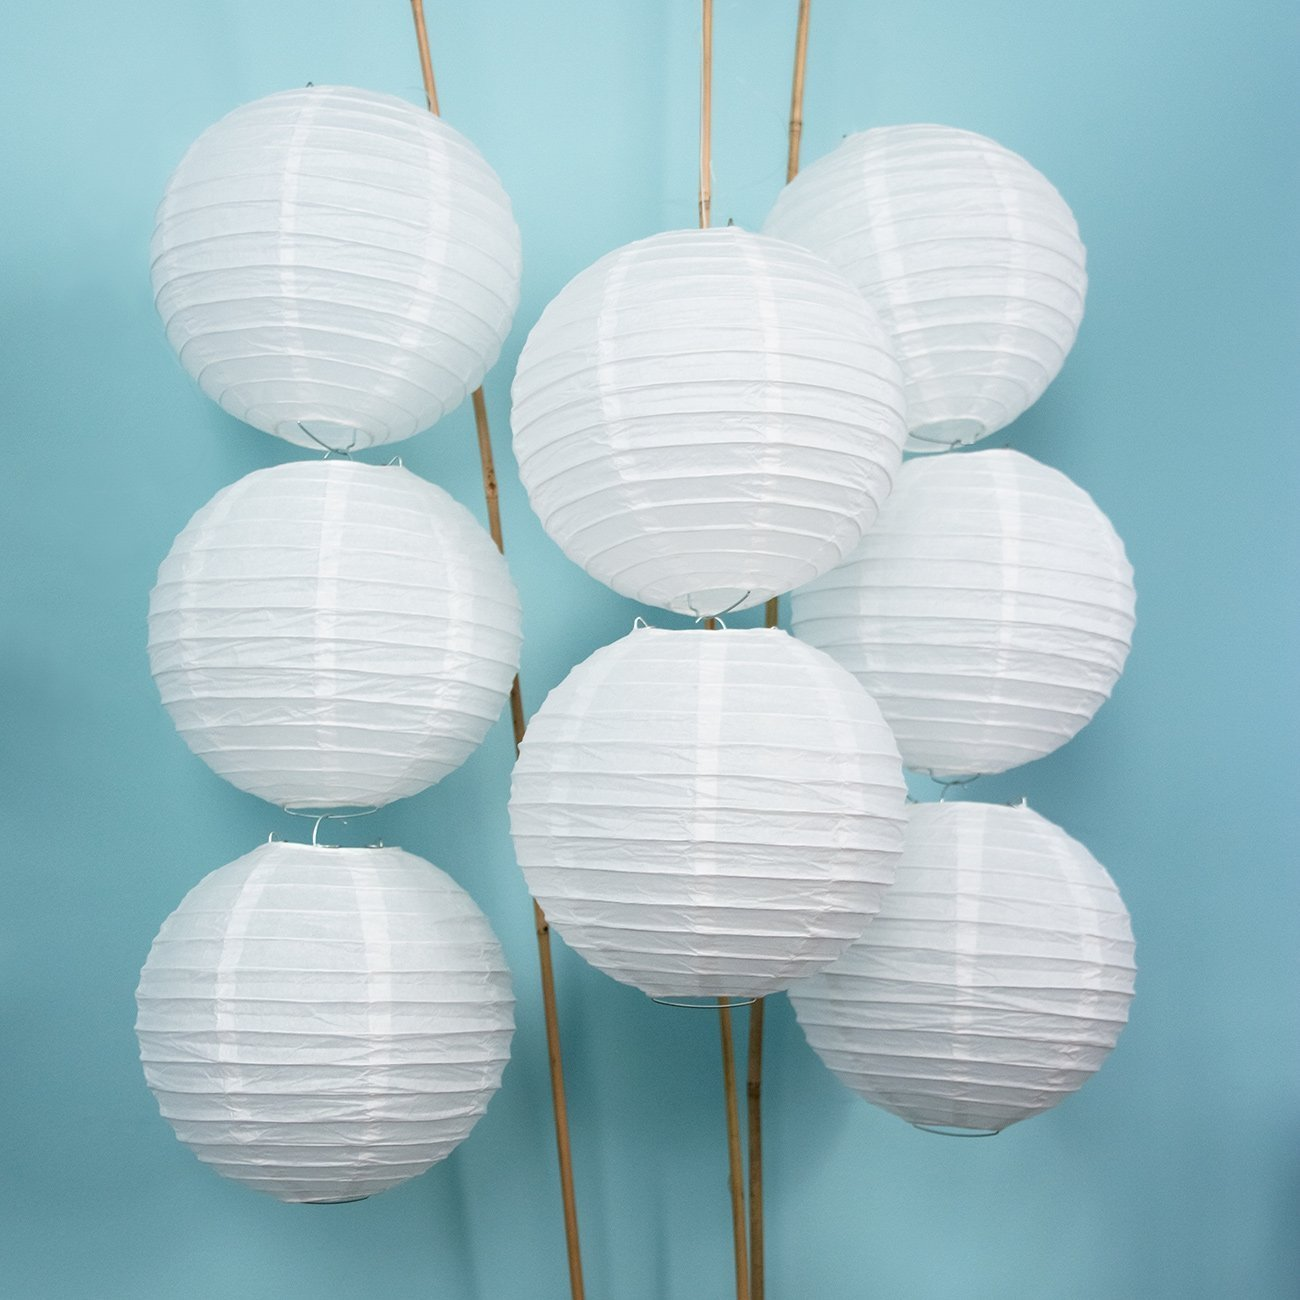 Tmade 12 Pack 14 White Paper Lanterns for Birthday Baby Shower Wedding Party Garden Home Decoration